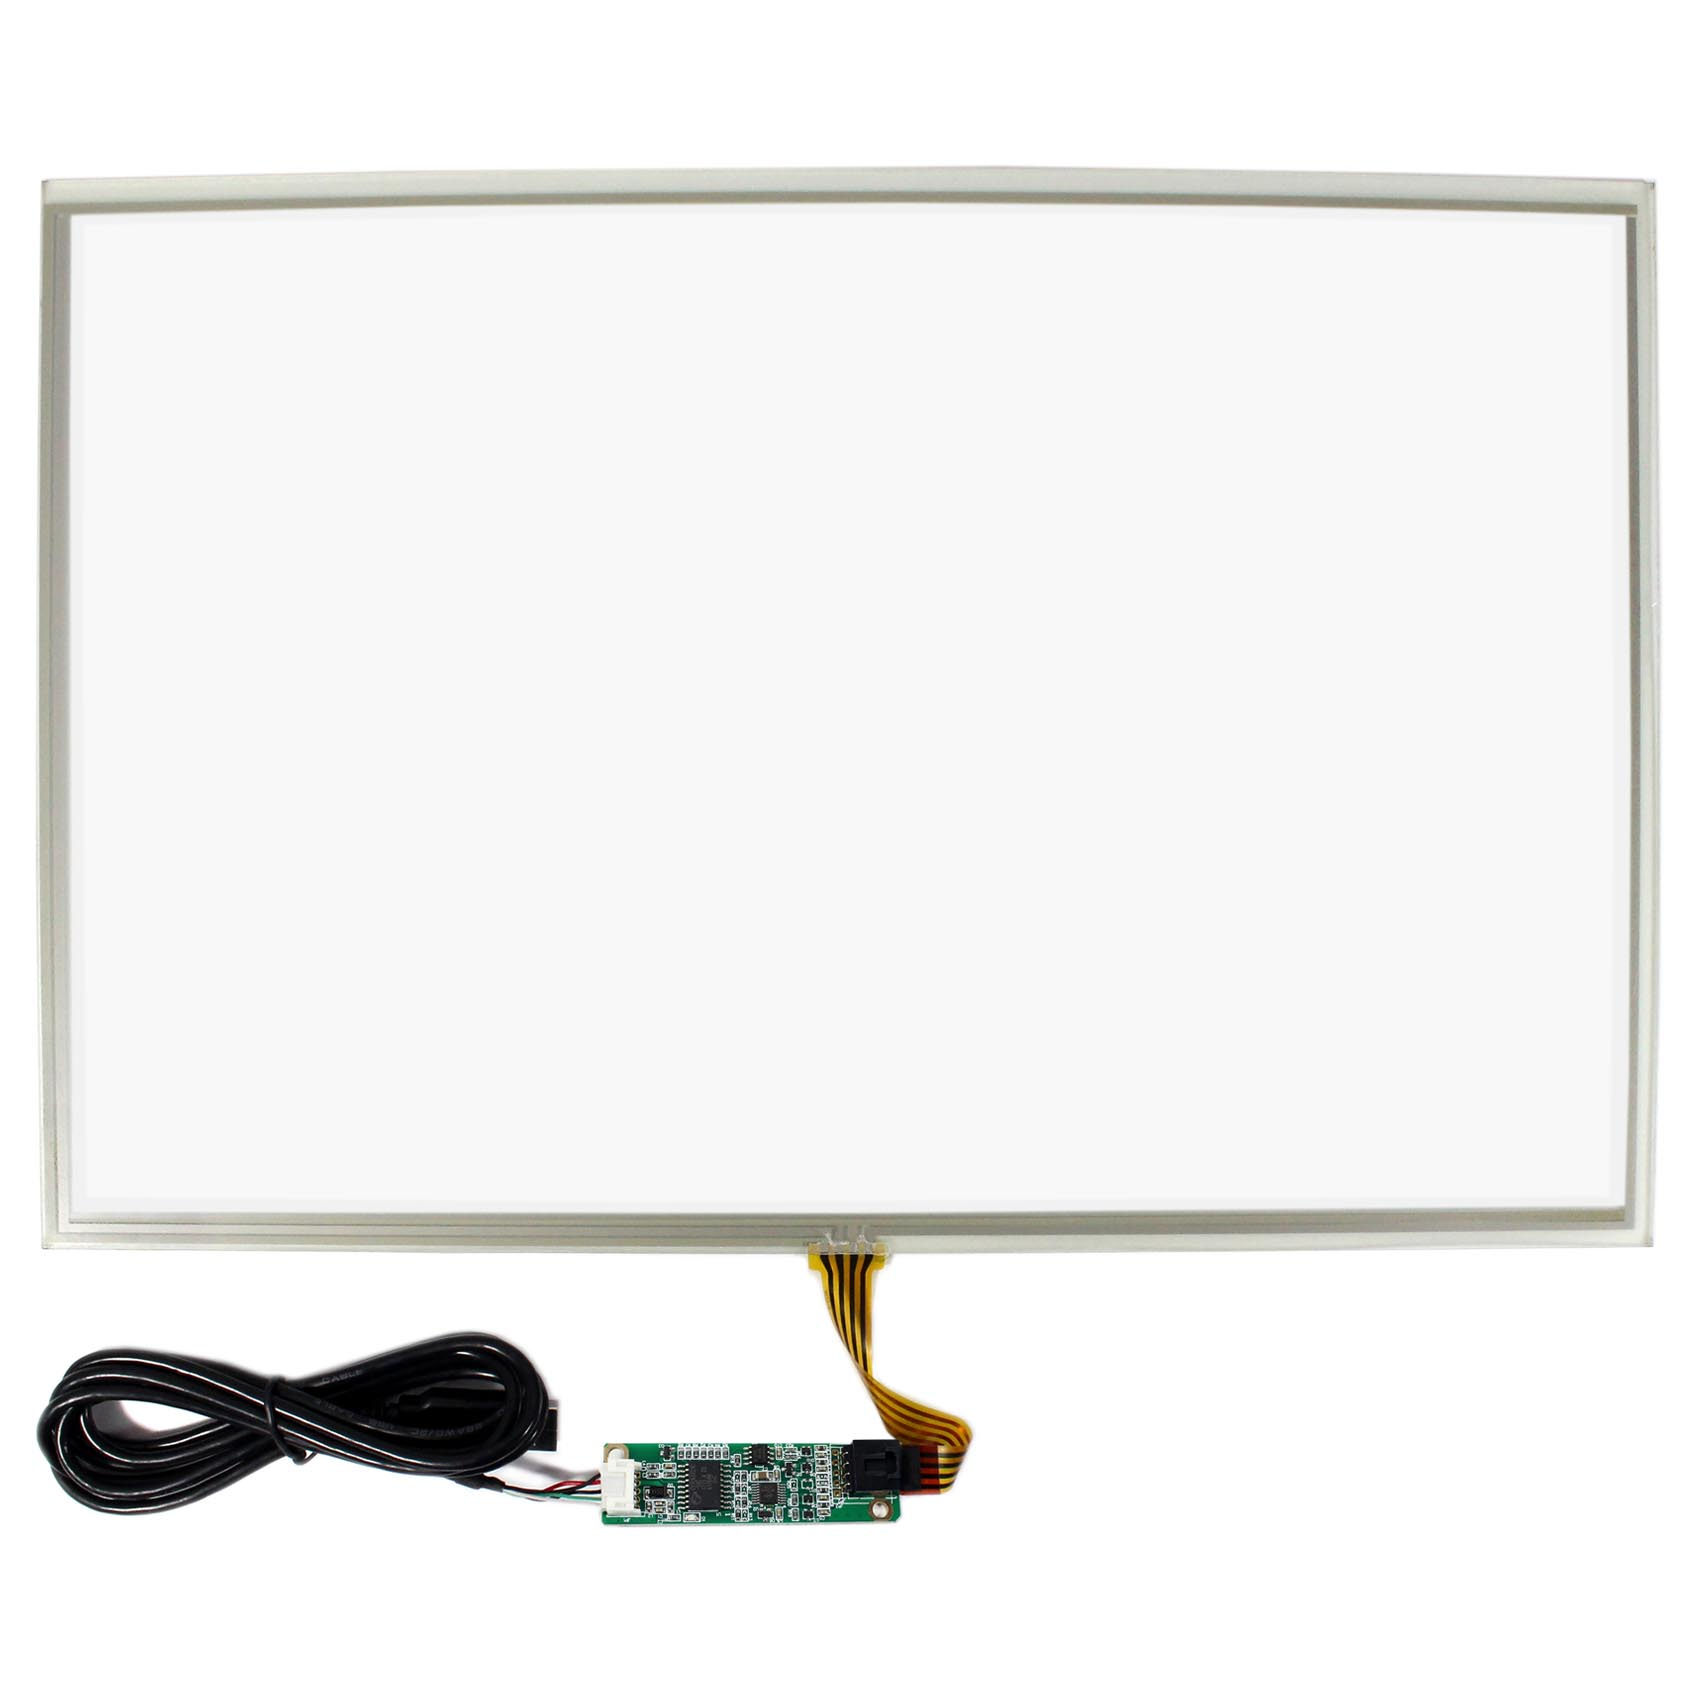 17 lcd panel Touch Screen Panel 4-wire Resistive  Dimension Size 387mm x 252mm17 lcd panel Touch Screen Panel 4-wire Resistive  Dimension Size 387mm x 252mm